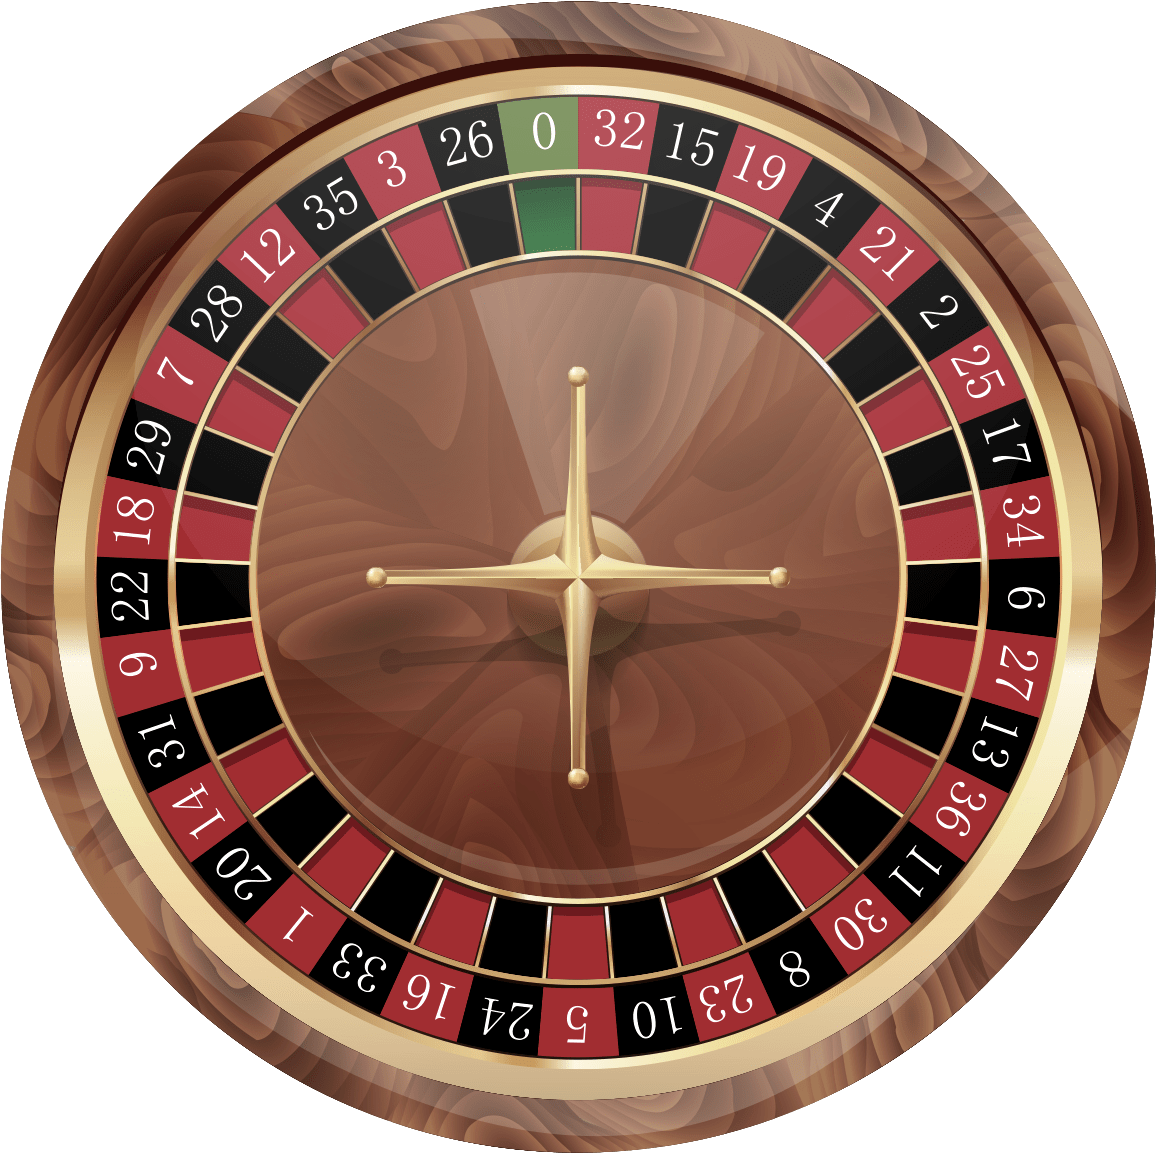 Perfect Roulette Wheel